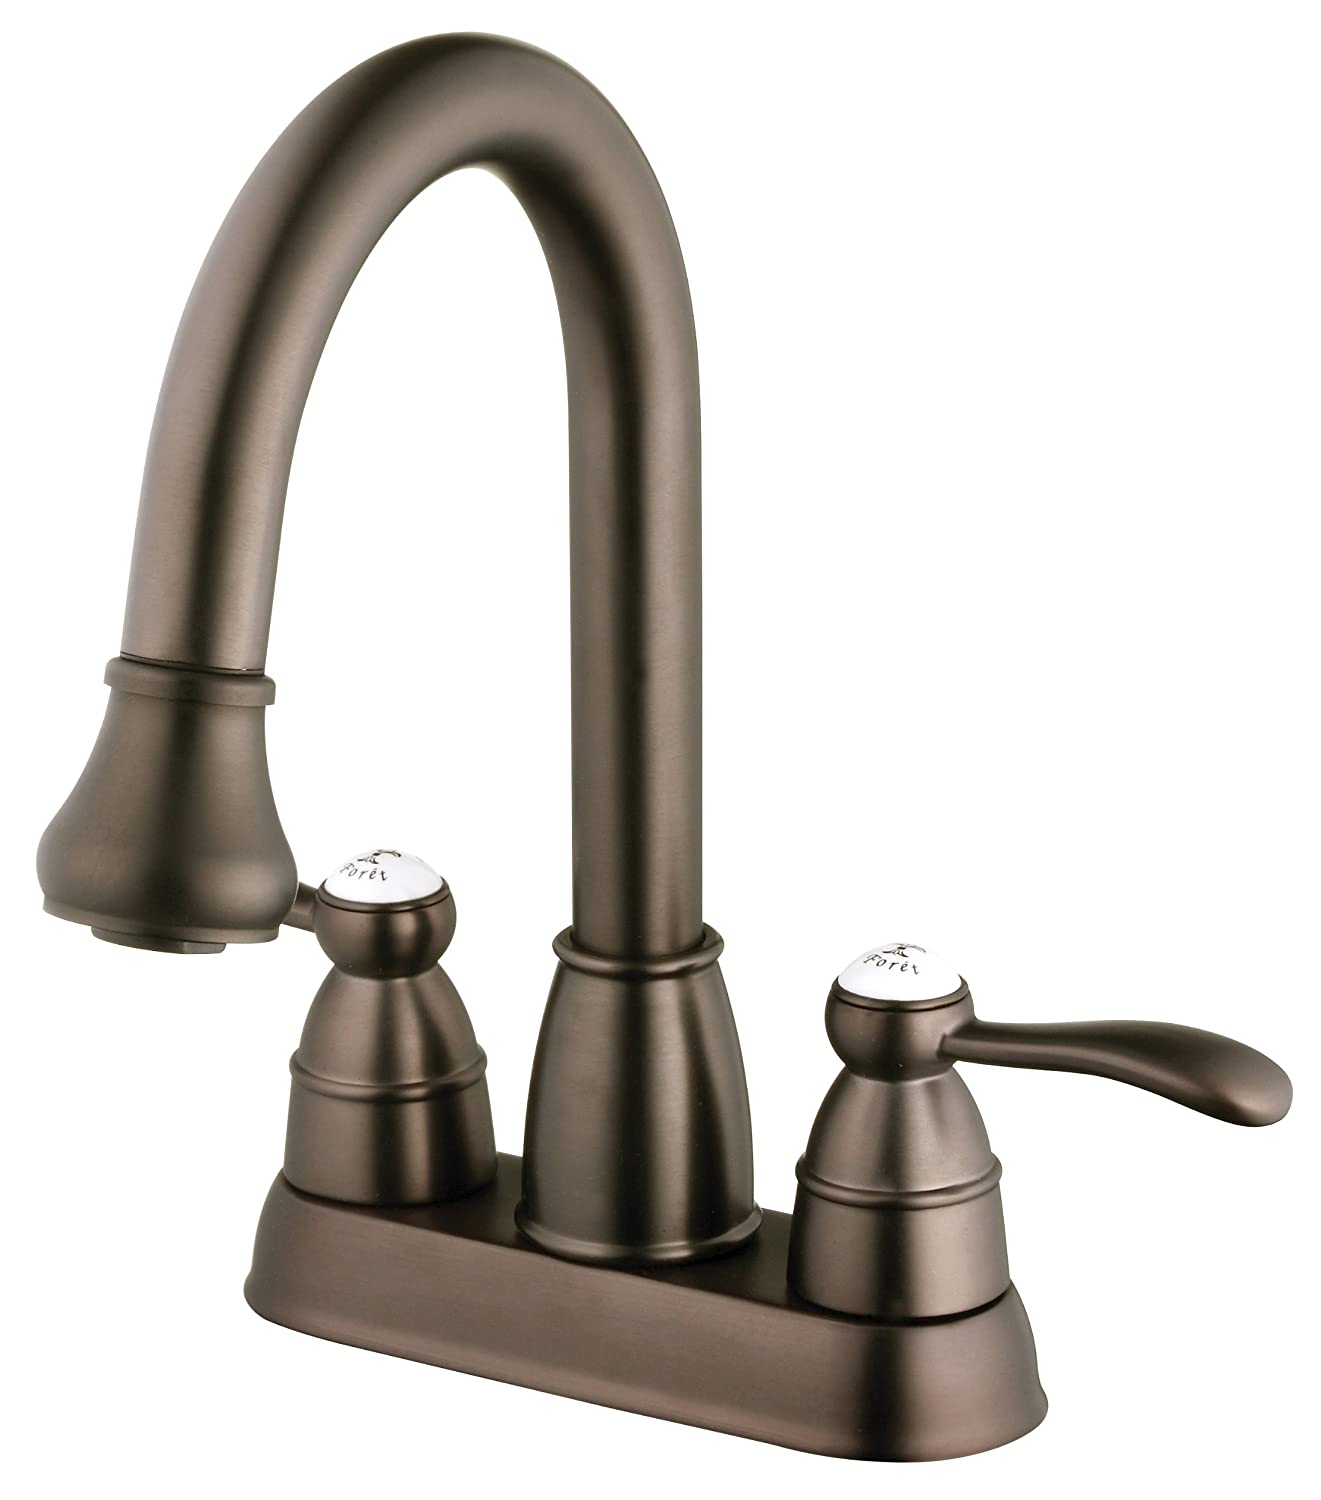 pin faucet x steel stainless sink with single utility faucets